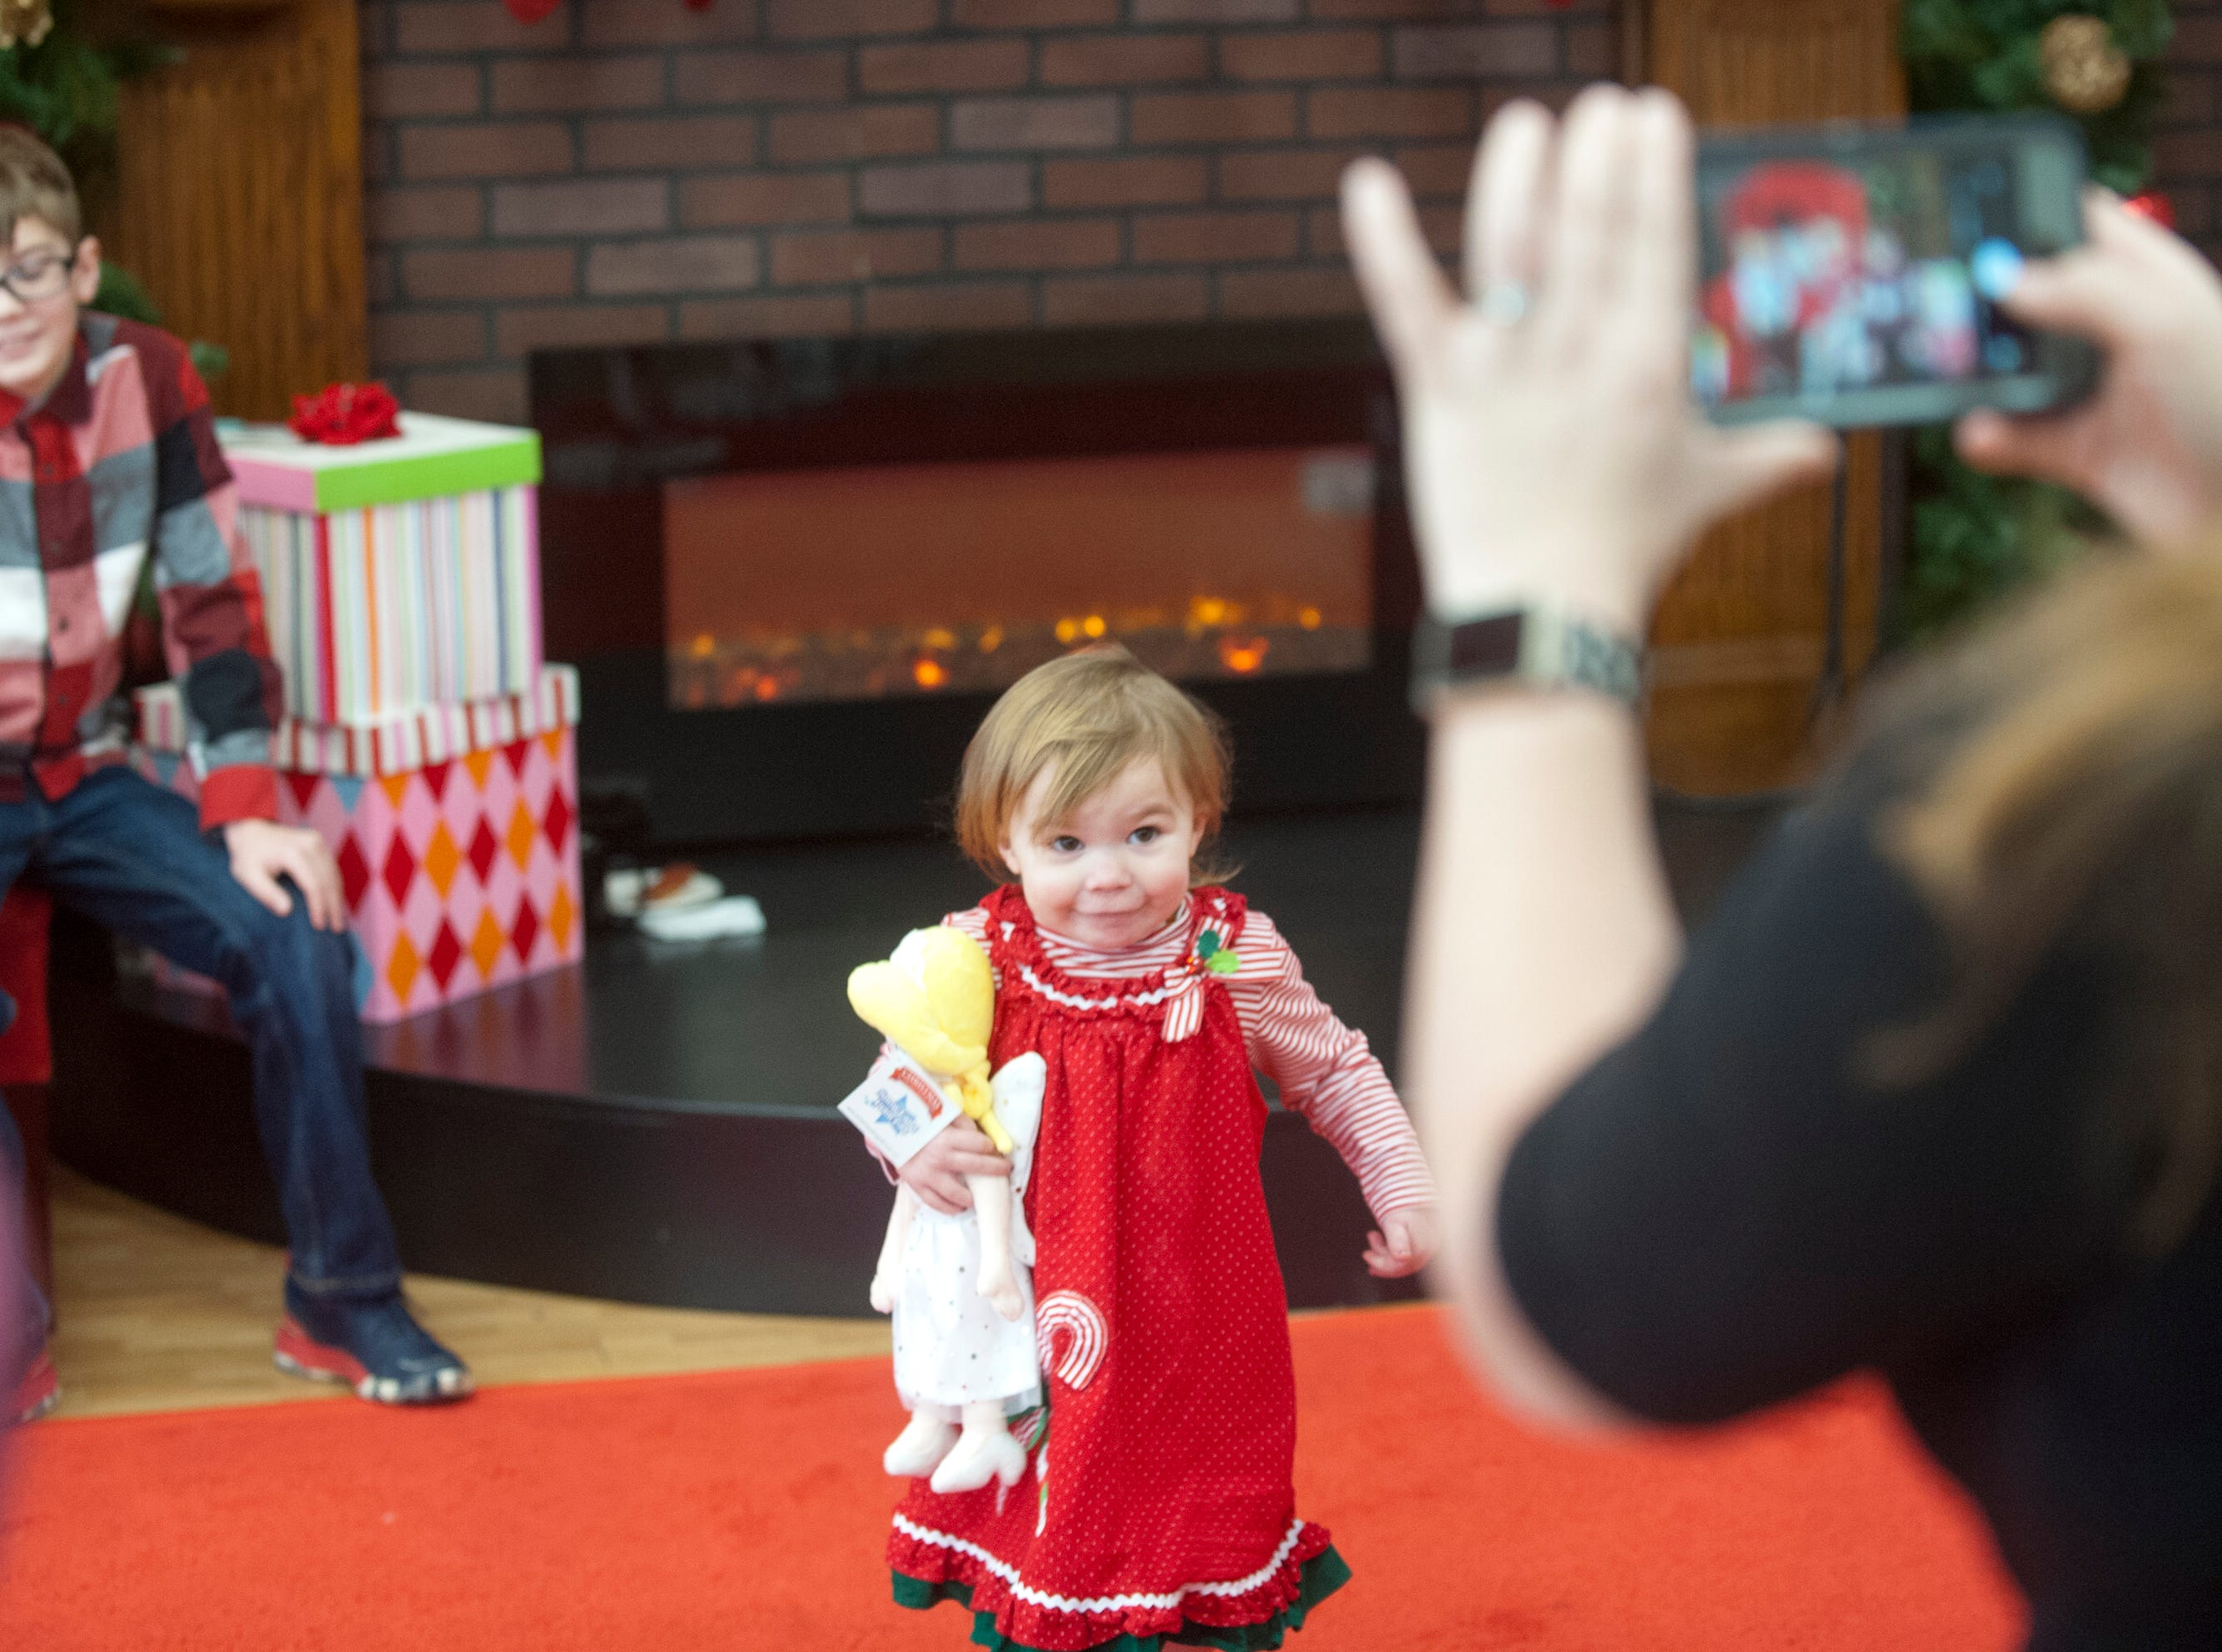 """A shy Olivia Rogers, age 2, of Versailles, Ky., wouldn't sit with Santa for a portrait, so mom snaps her and her new doll in front of a fireplace to the right ofSanta and his chair at the Galt House Hotel's """"Breakfast with Santa"""" event.22 December 2018"""